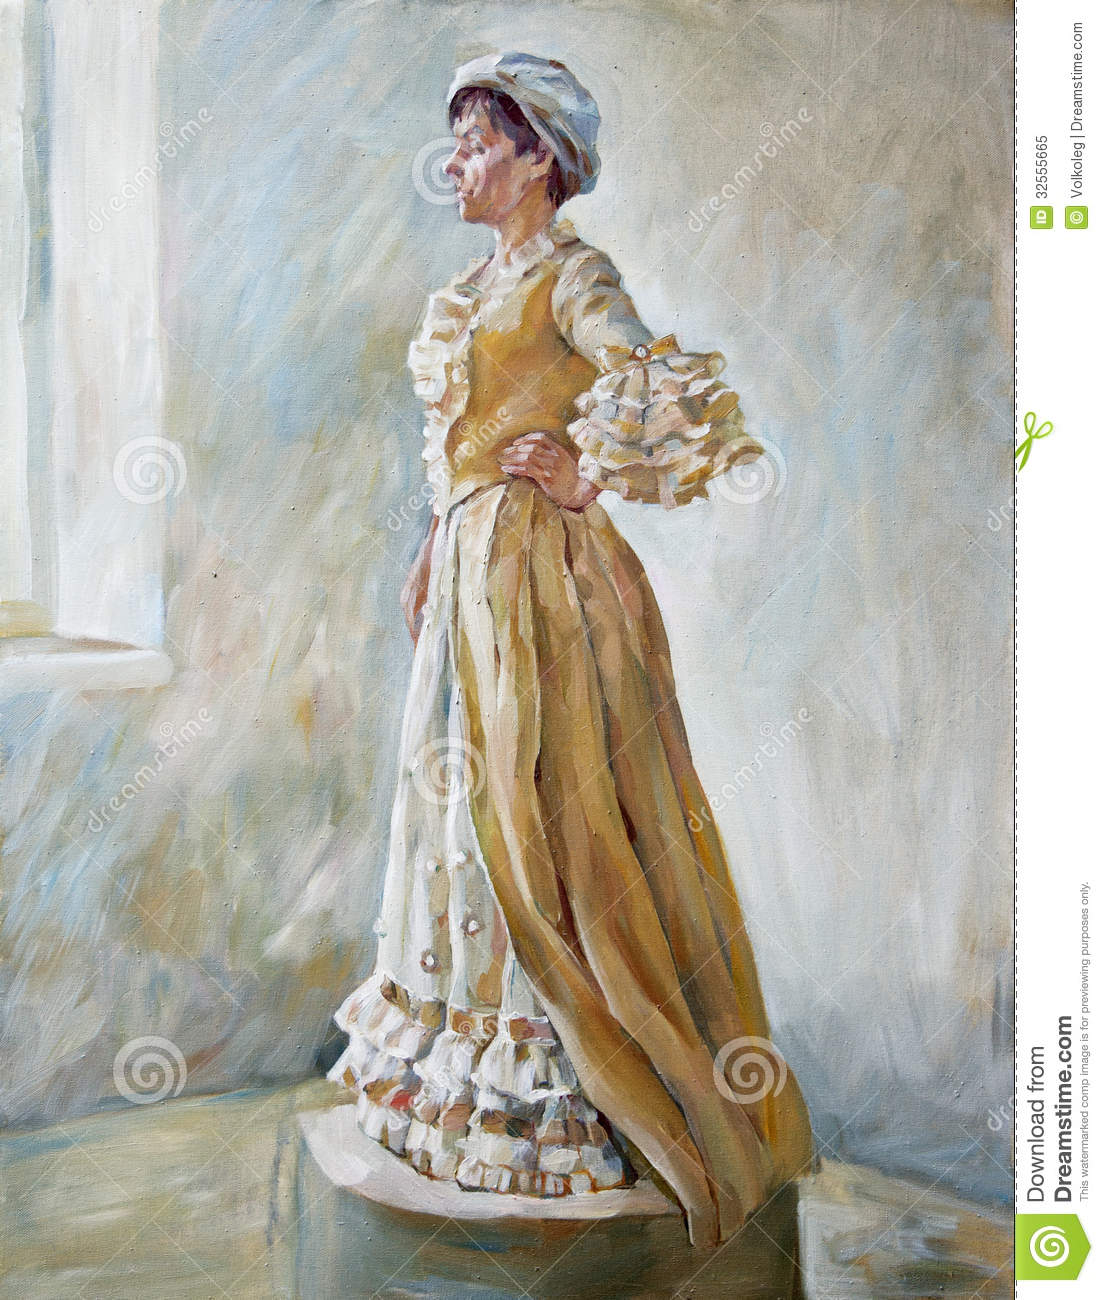 Woman In Old Fashioned Dress Standing Oil Illustration Royalty Free Stock Photo Image 32555665